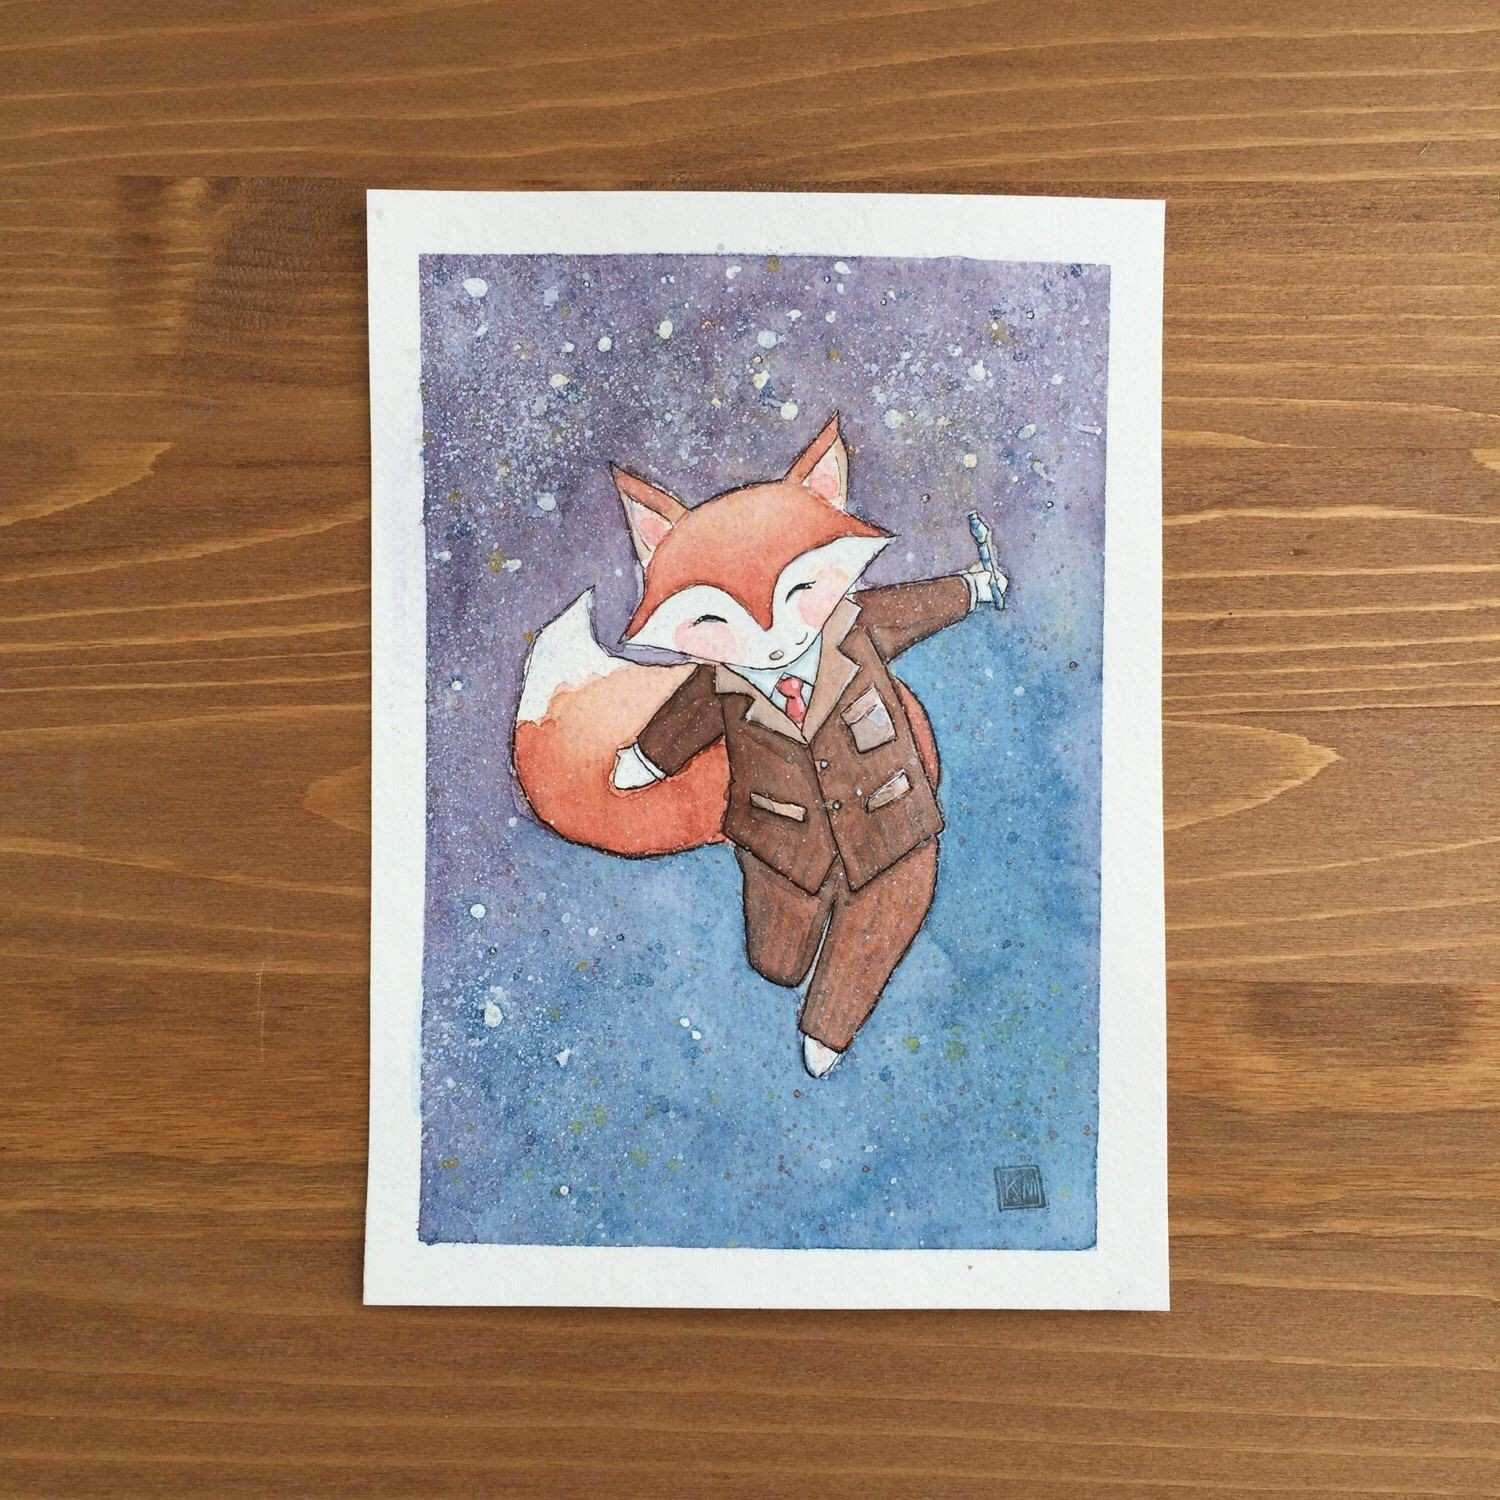 Fox Doctor Who Watercolor Print 5x7 by Kendra Minadeo Limited